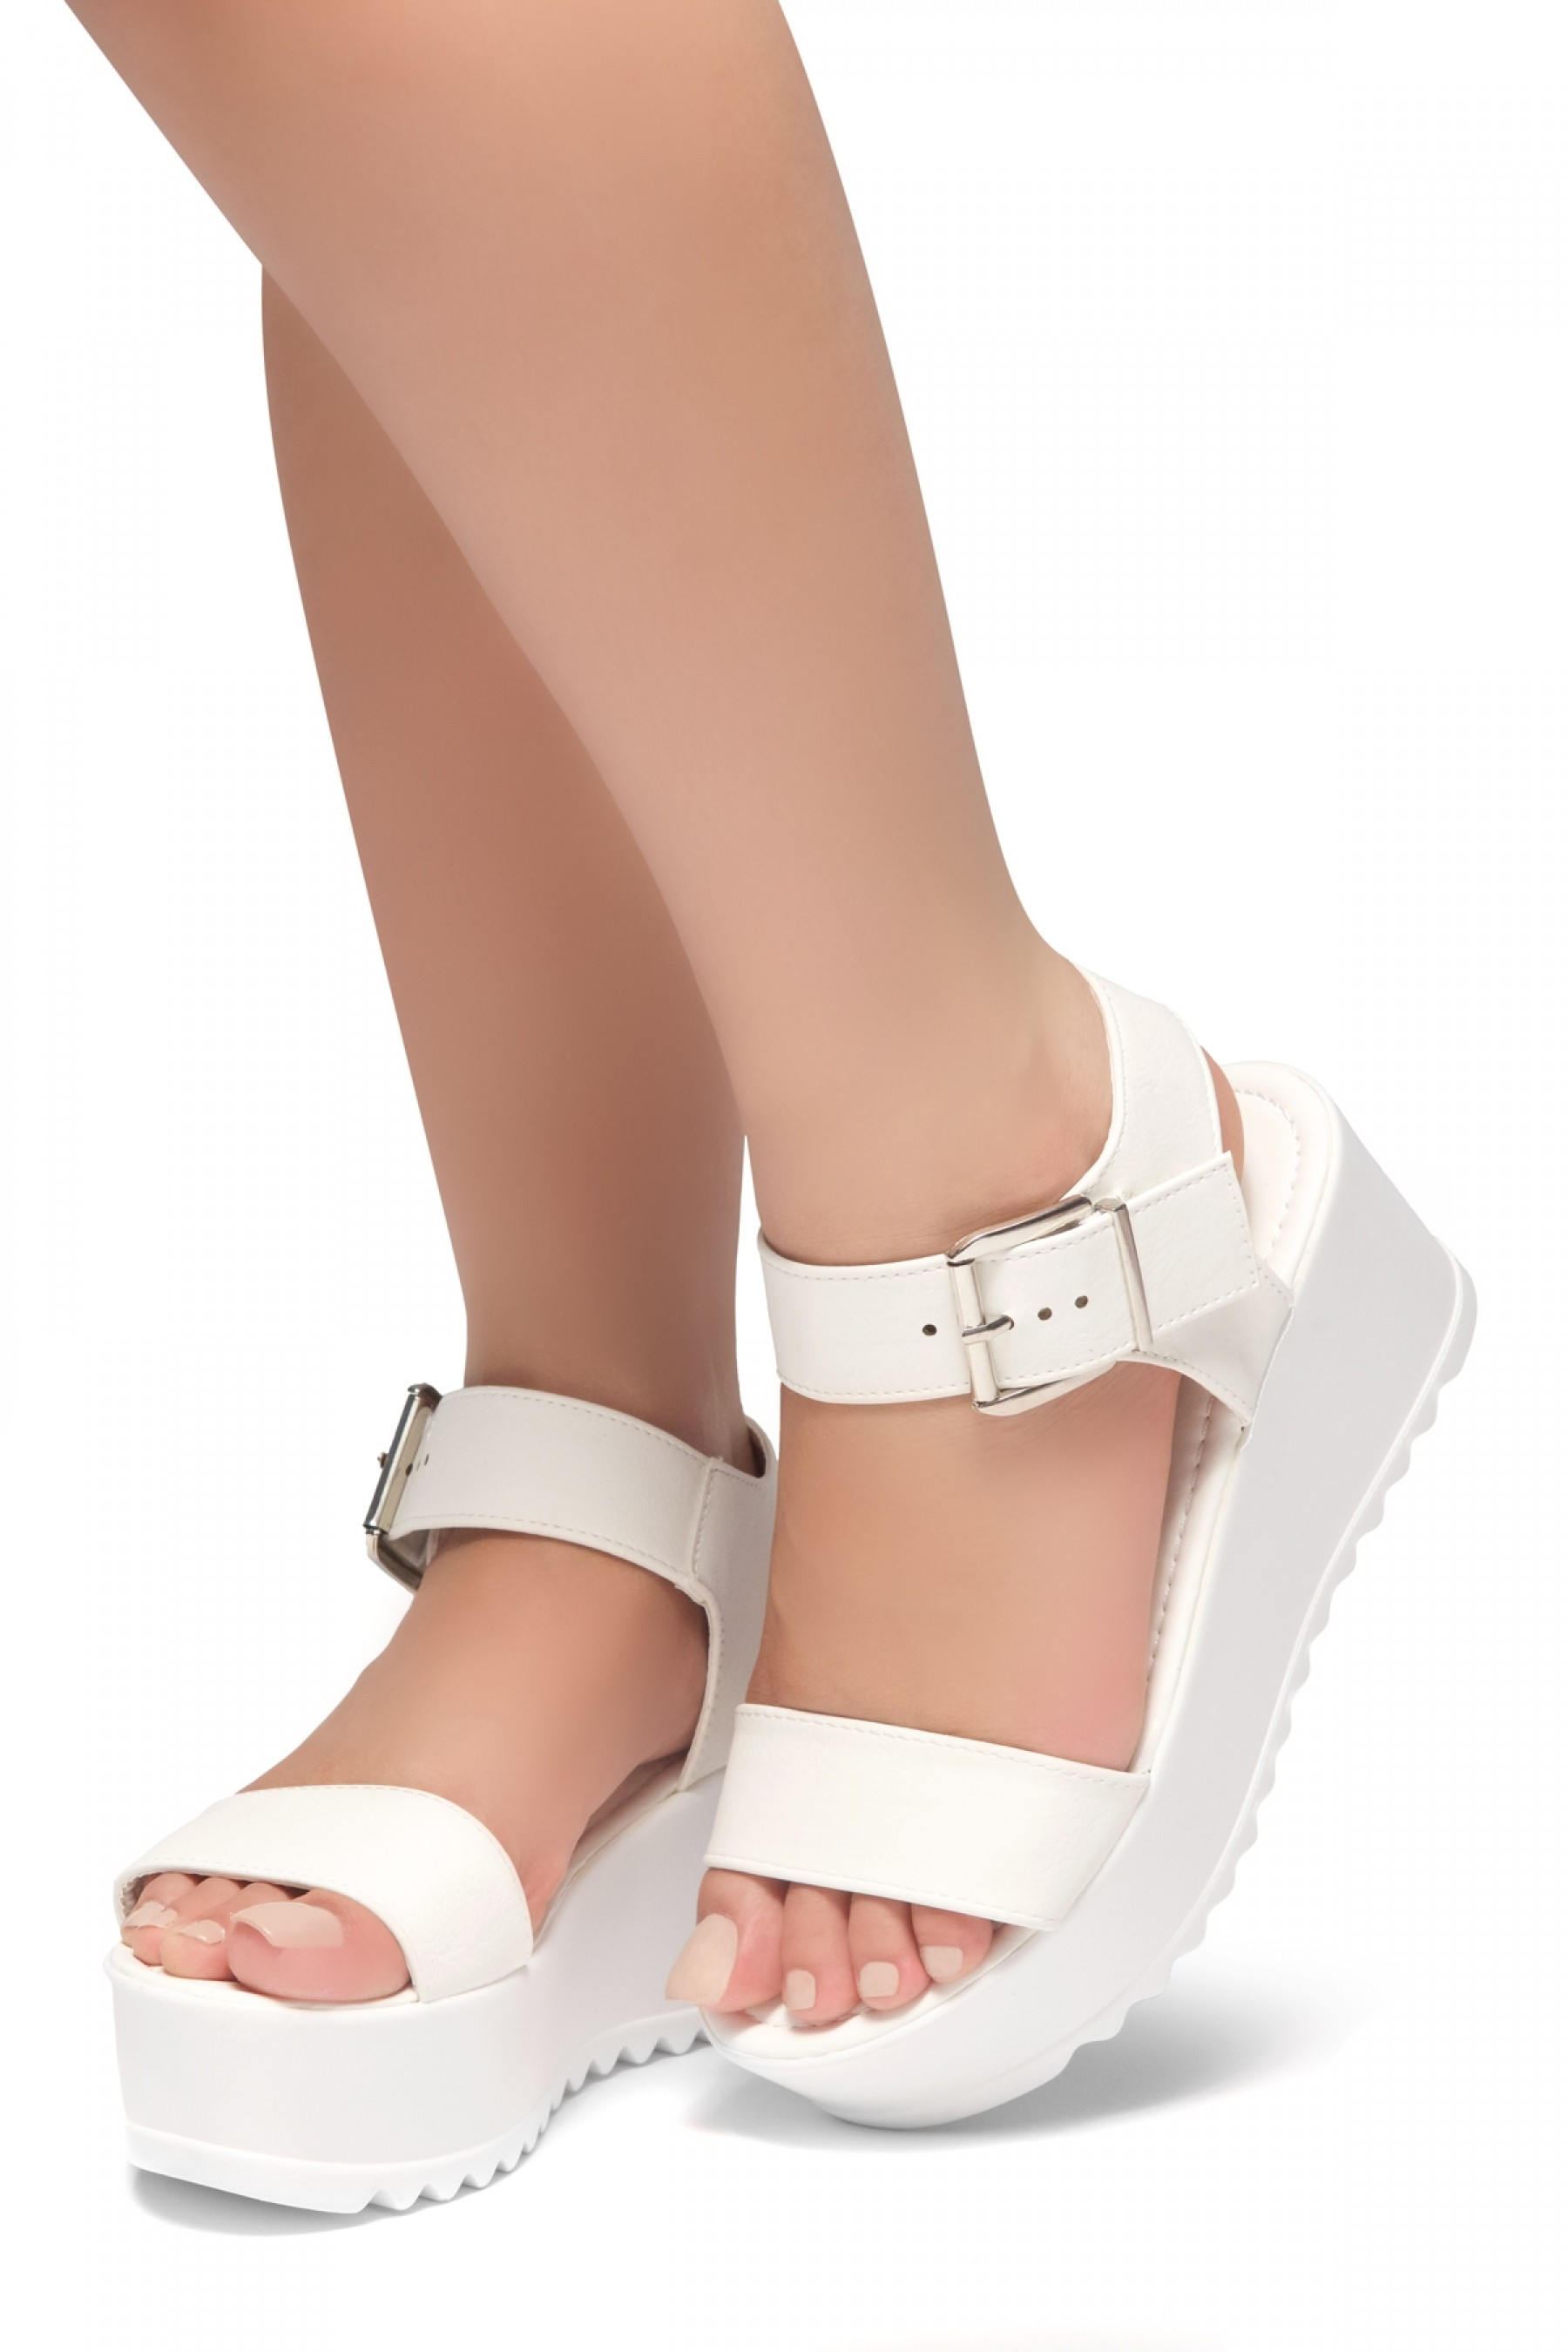 3ab47be2e6 White Faux Leather Ankle Strap Wedges @ Cicihot Wedges Shoes Store:Wedge  Shoes,Wedge Boots,Wedge Heels,Wedge Sandals,Dress Shoes,Summer Shoes,Spring  Shoes …